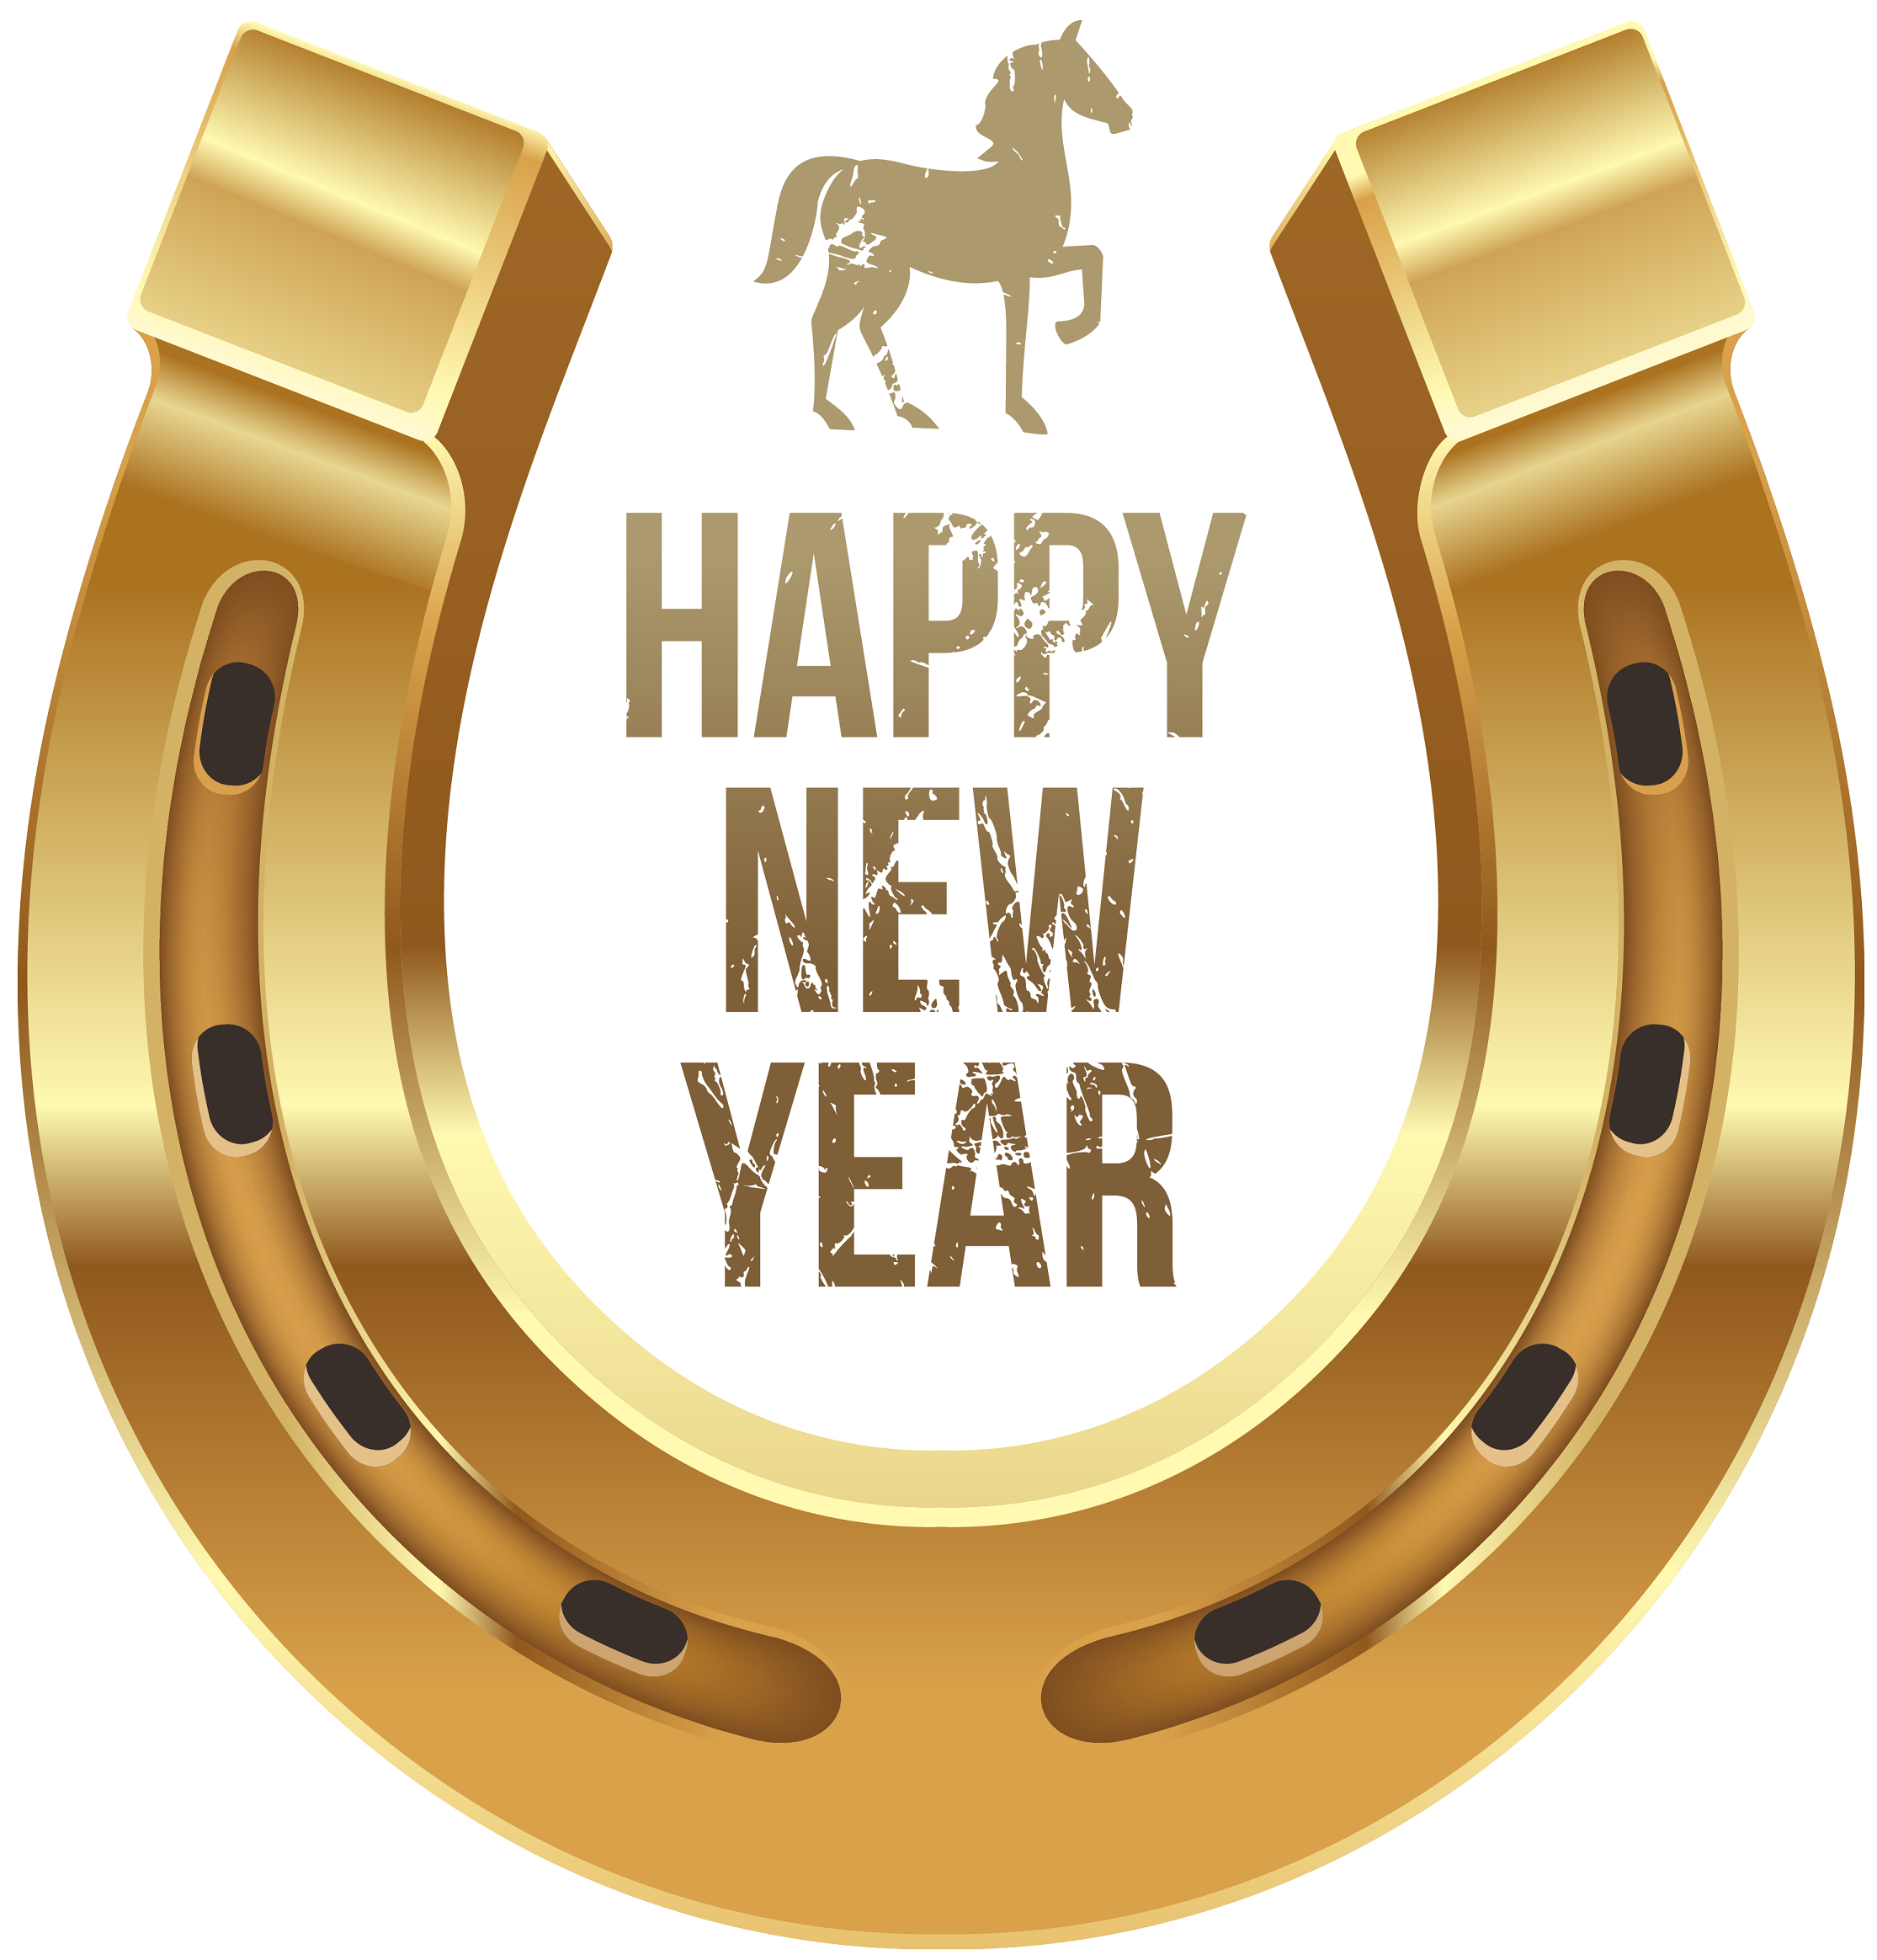 Happy New Year good luck horseshoe.